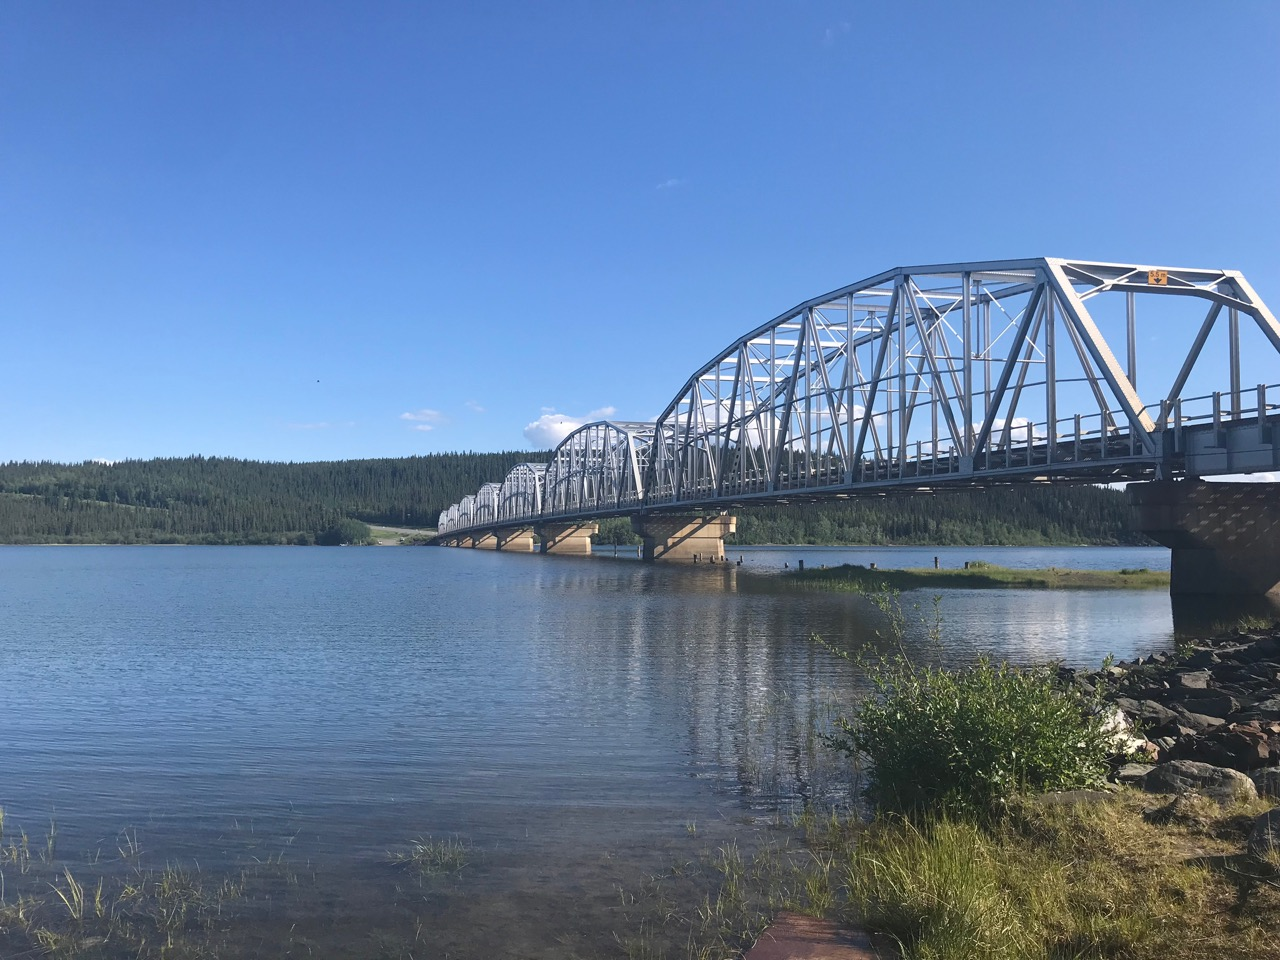 The Alaska Highway crosses many bridges, including this one over Teslin Lake.